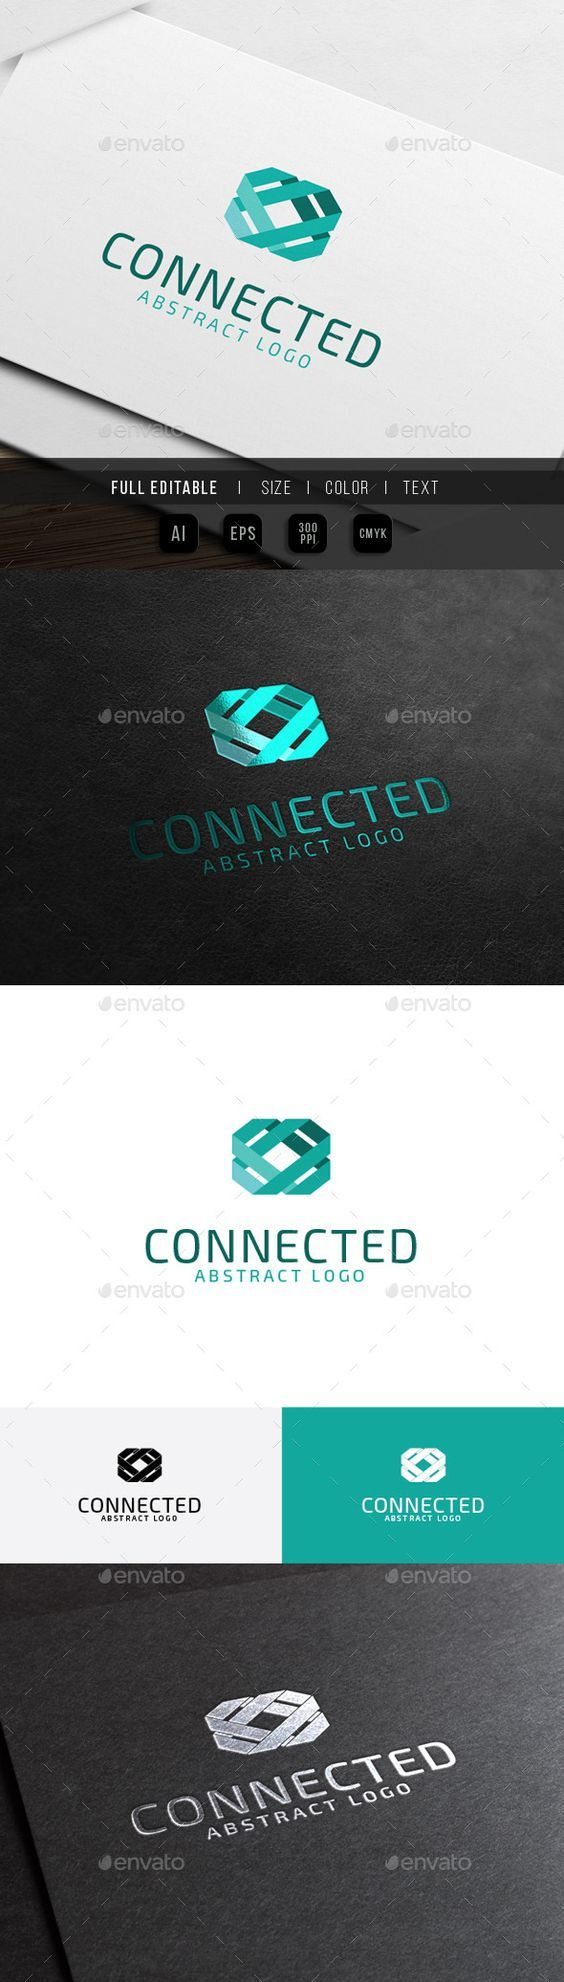 Abstract Connect - Link Technology Logo Template Vector EPS, AI #design #logotype Download: http://graphicriver.net/item/abstract-connect-link-technology/10423181?ref=ksioks: